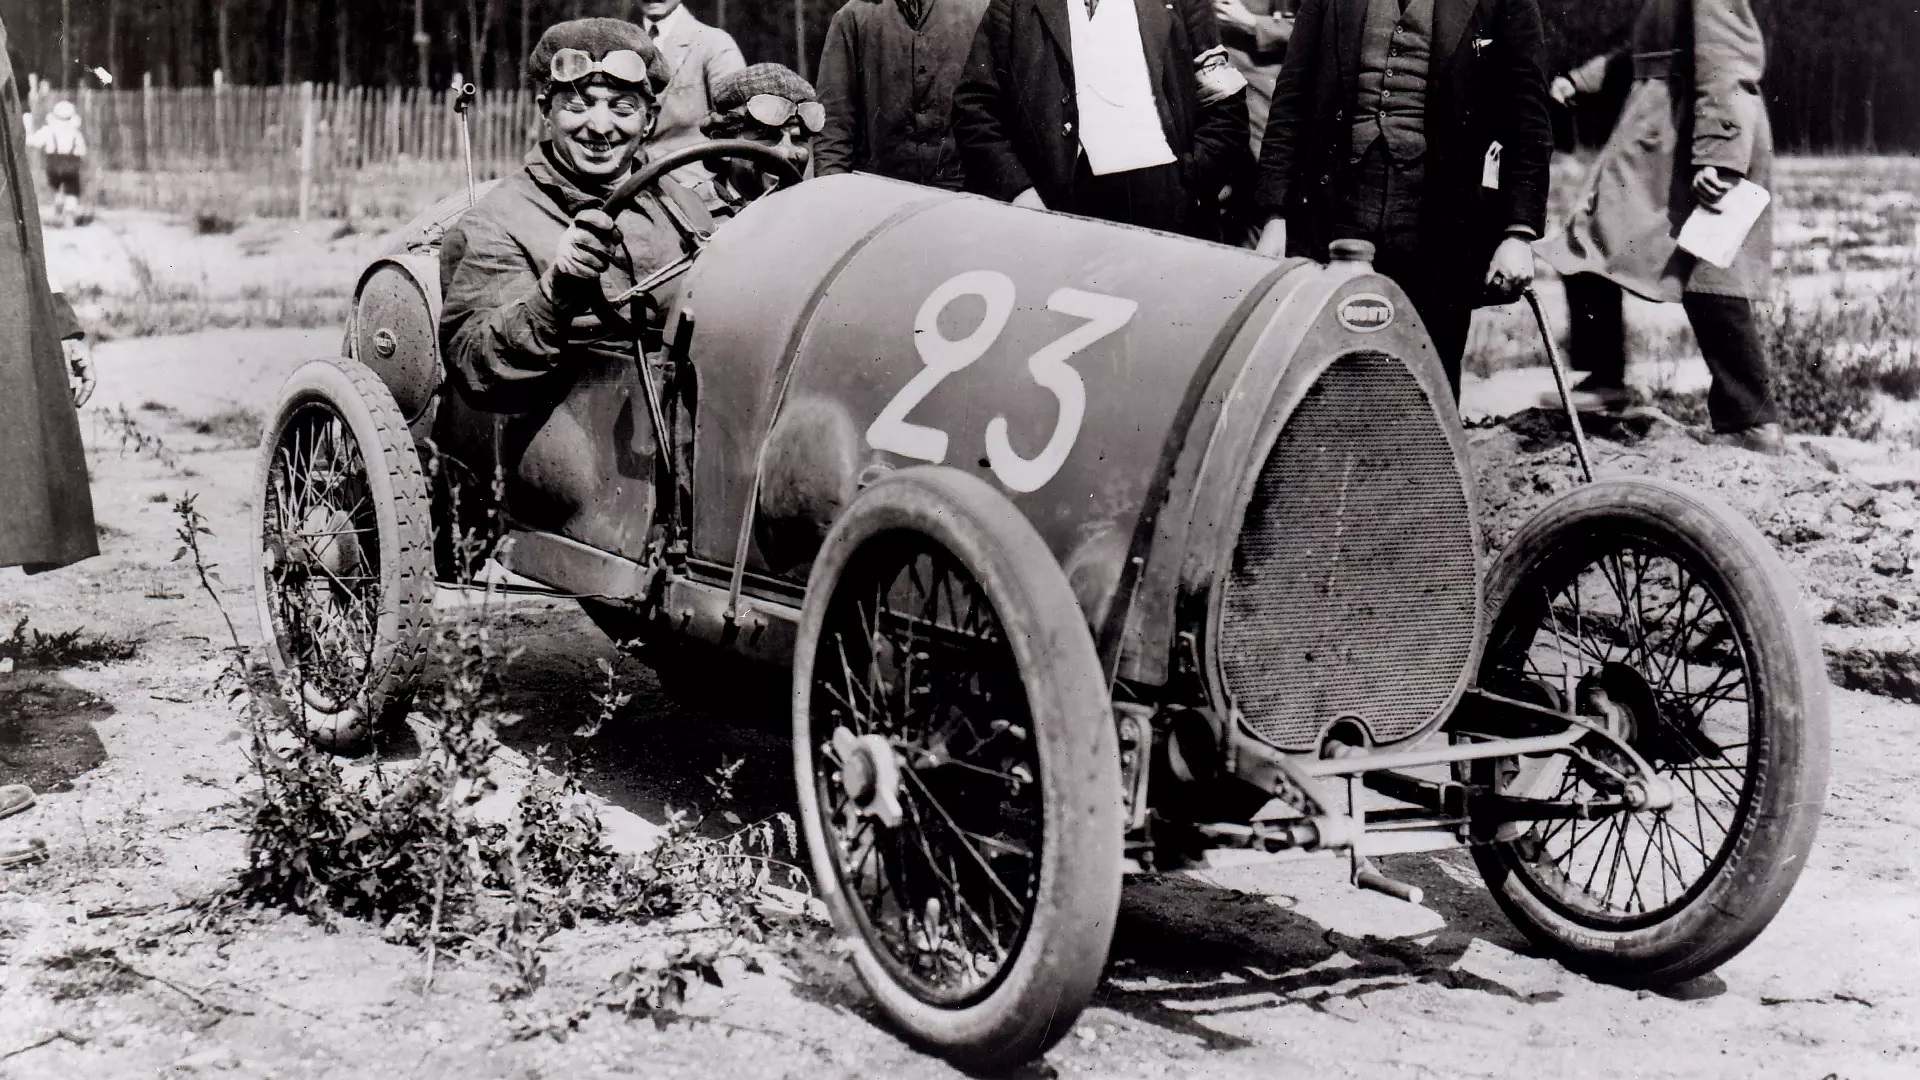 These vintage Bugatti photos honor the muddy, reckless days of prewar Grand Prix racing